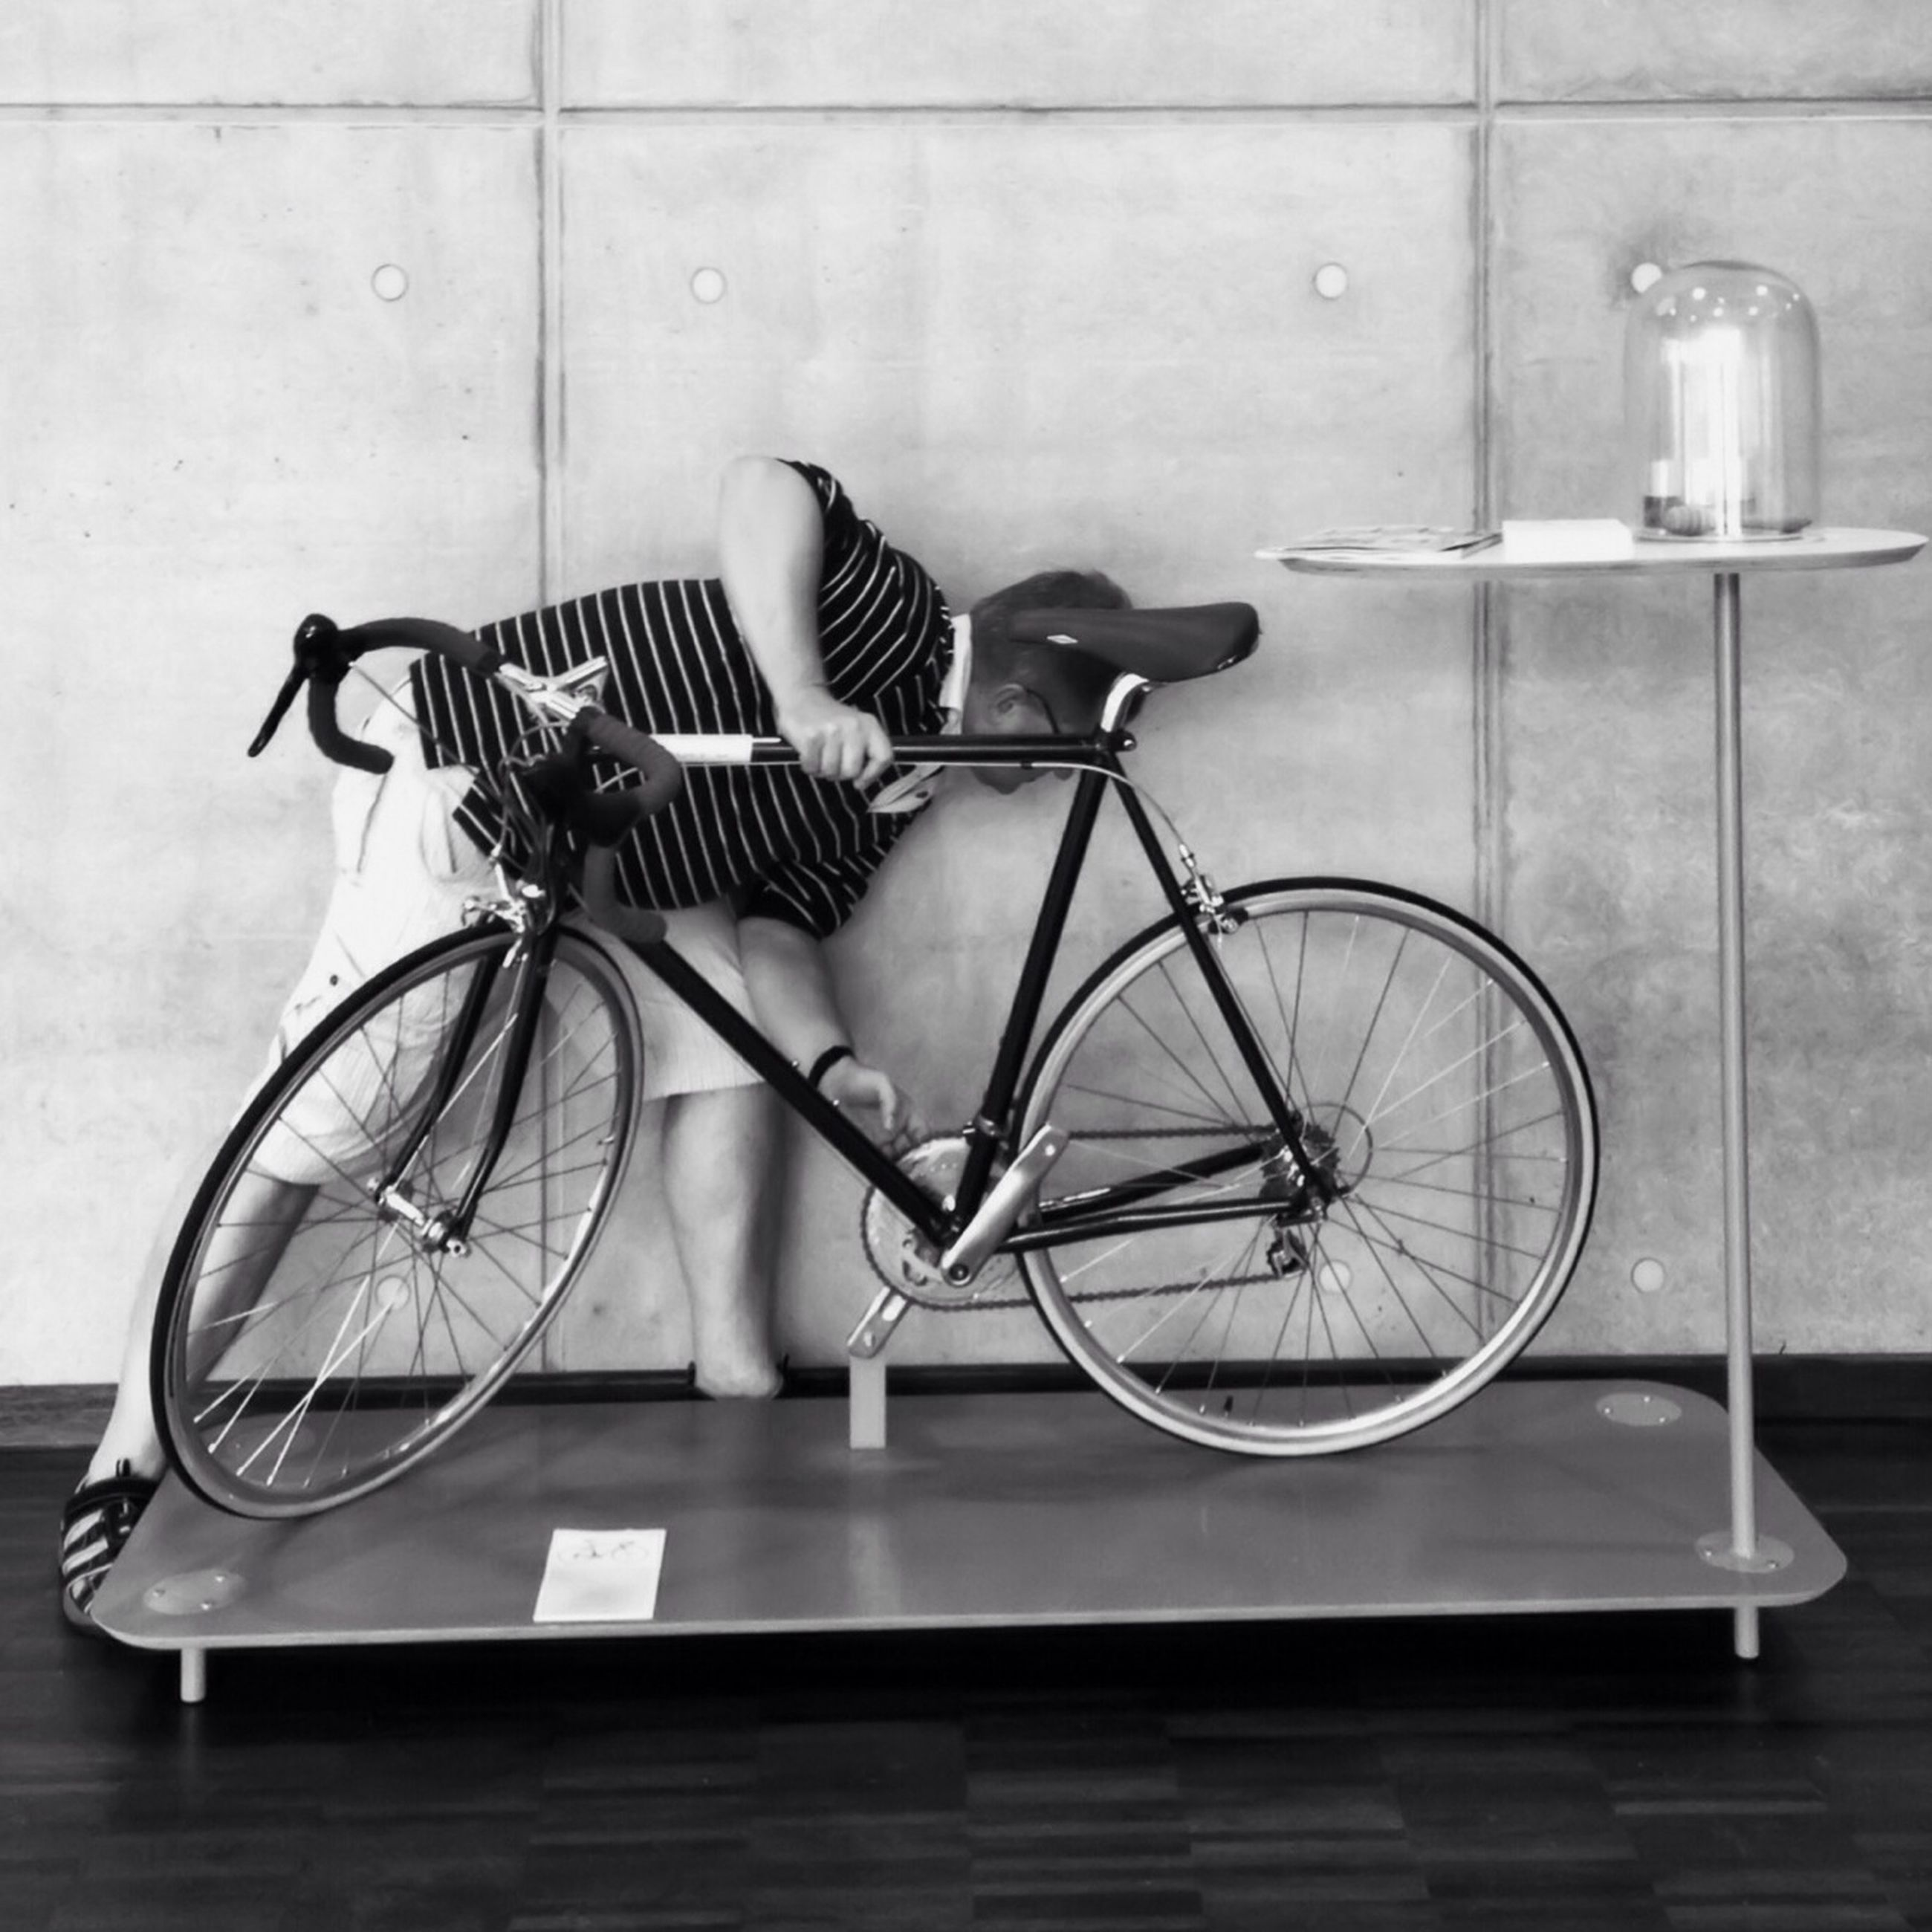 bicycle, indoors, absence, wall - building feature, metal, built structure, chair, stationary, wall, table, architecture, no people, empty, railing, day, still life, parking, high angle view, parked, side view